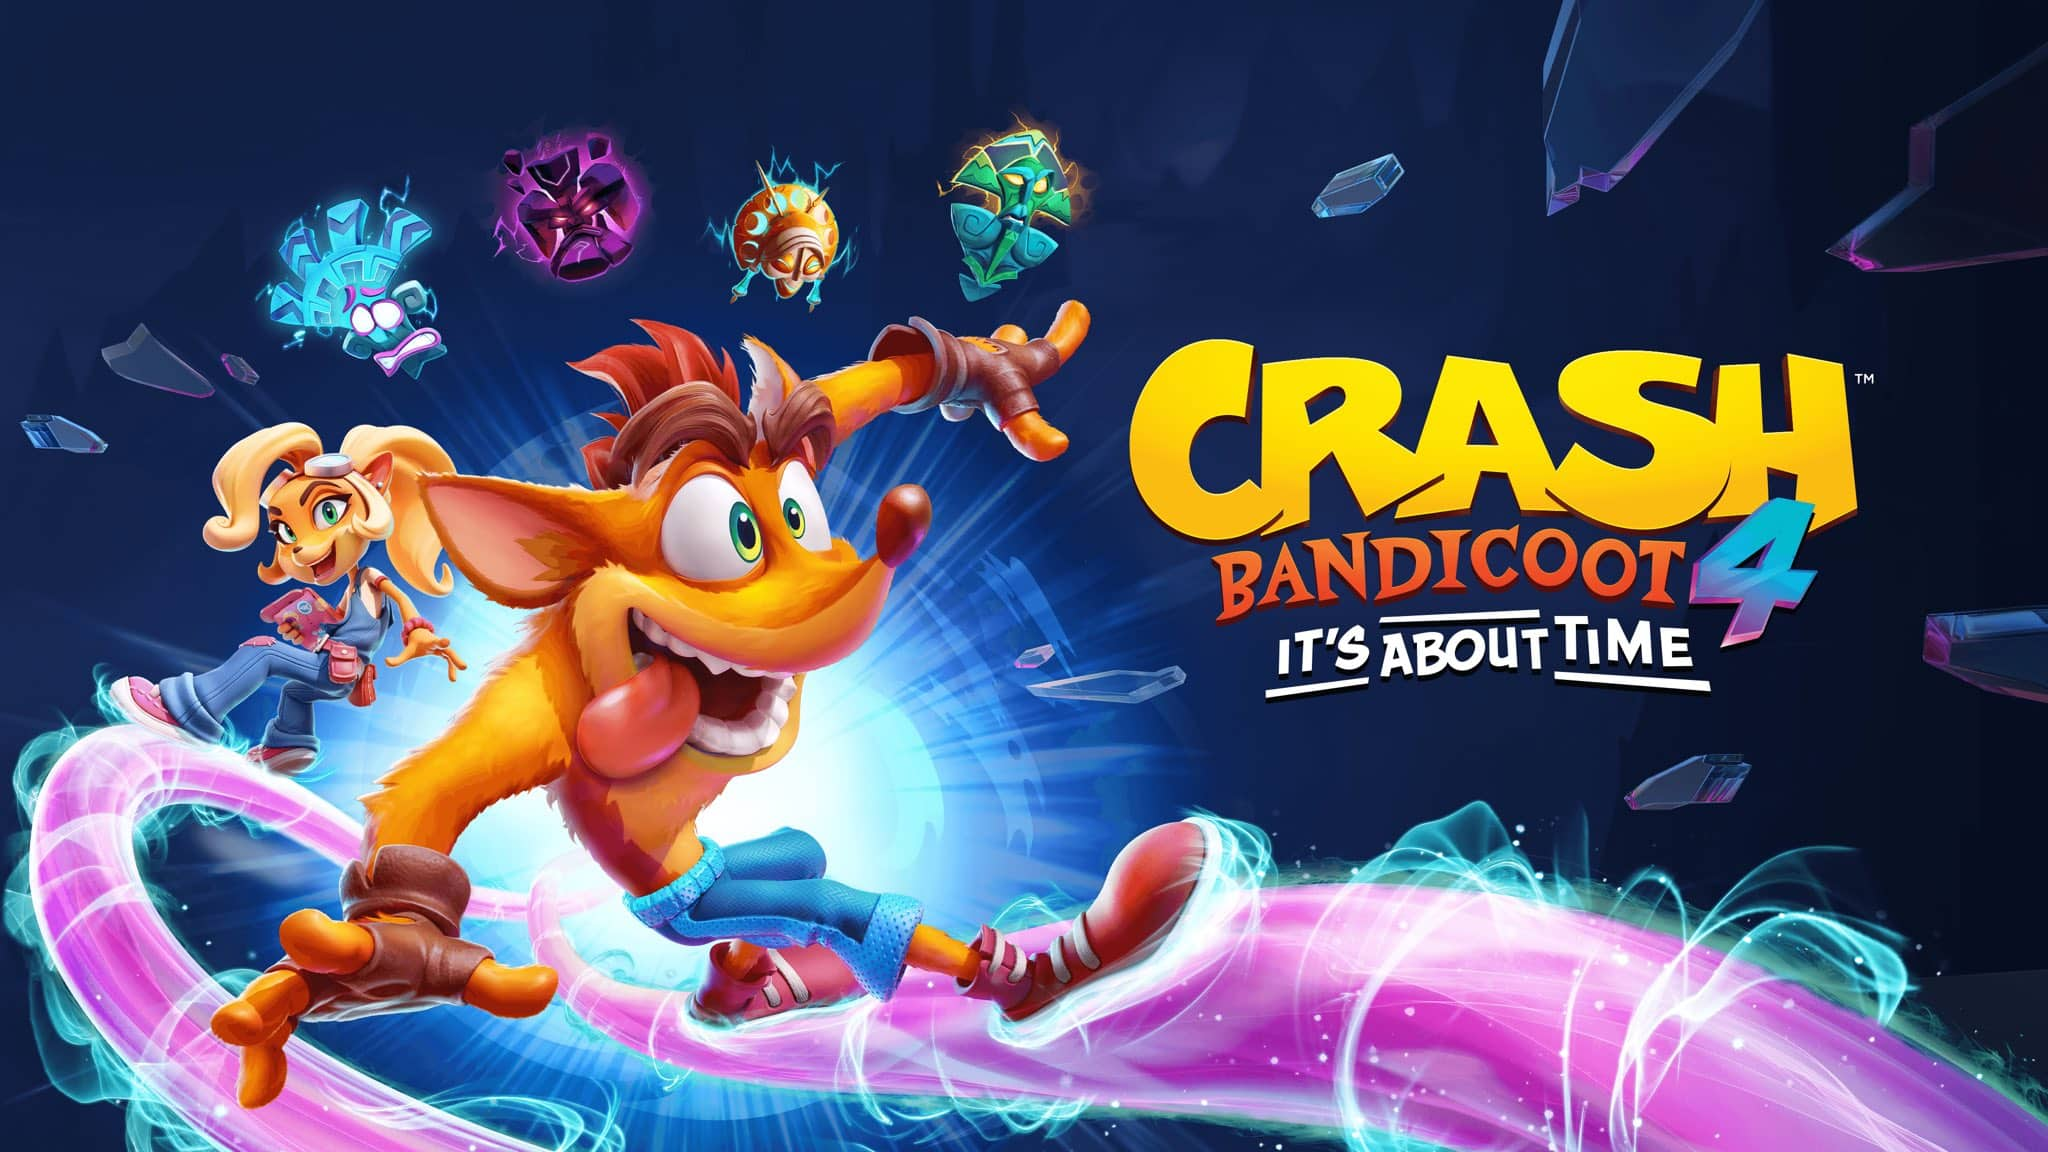 Crash Bandicoot 4: It's About Time PS5 Xbox Series X S SwitchMicrotransactions Multiplayer Review Roundup